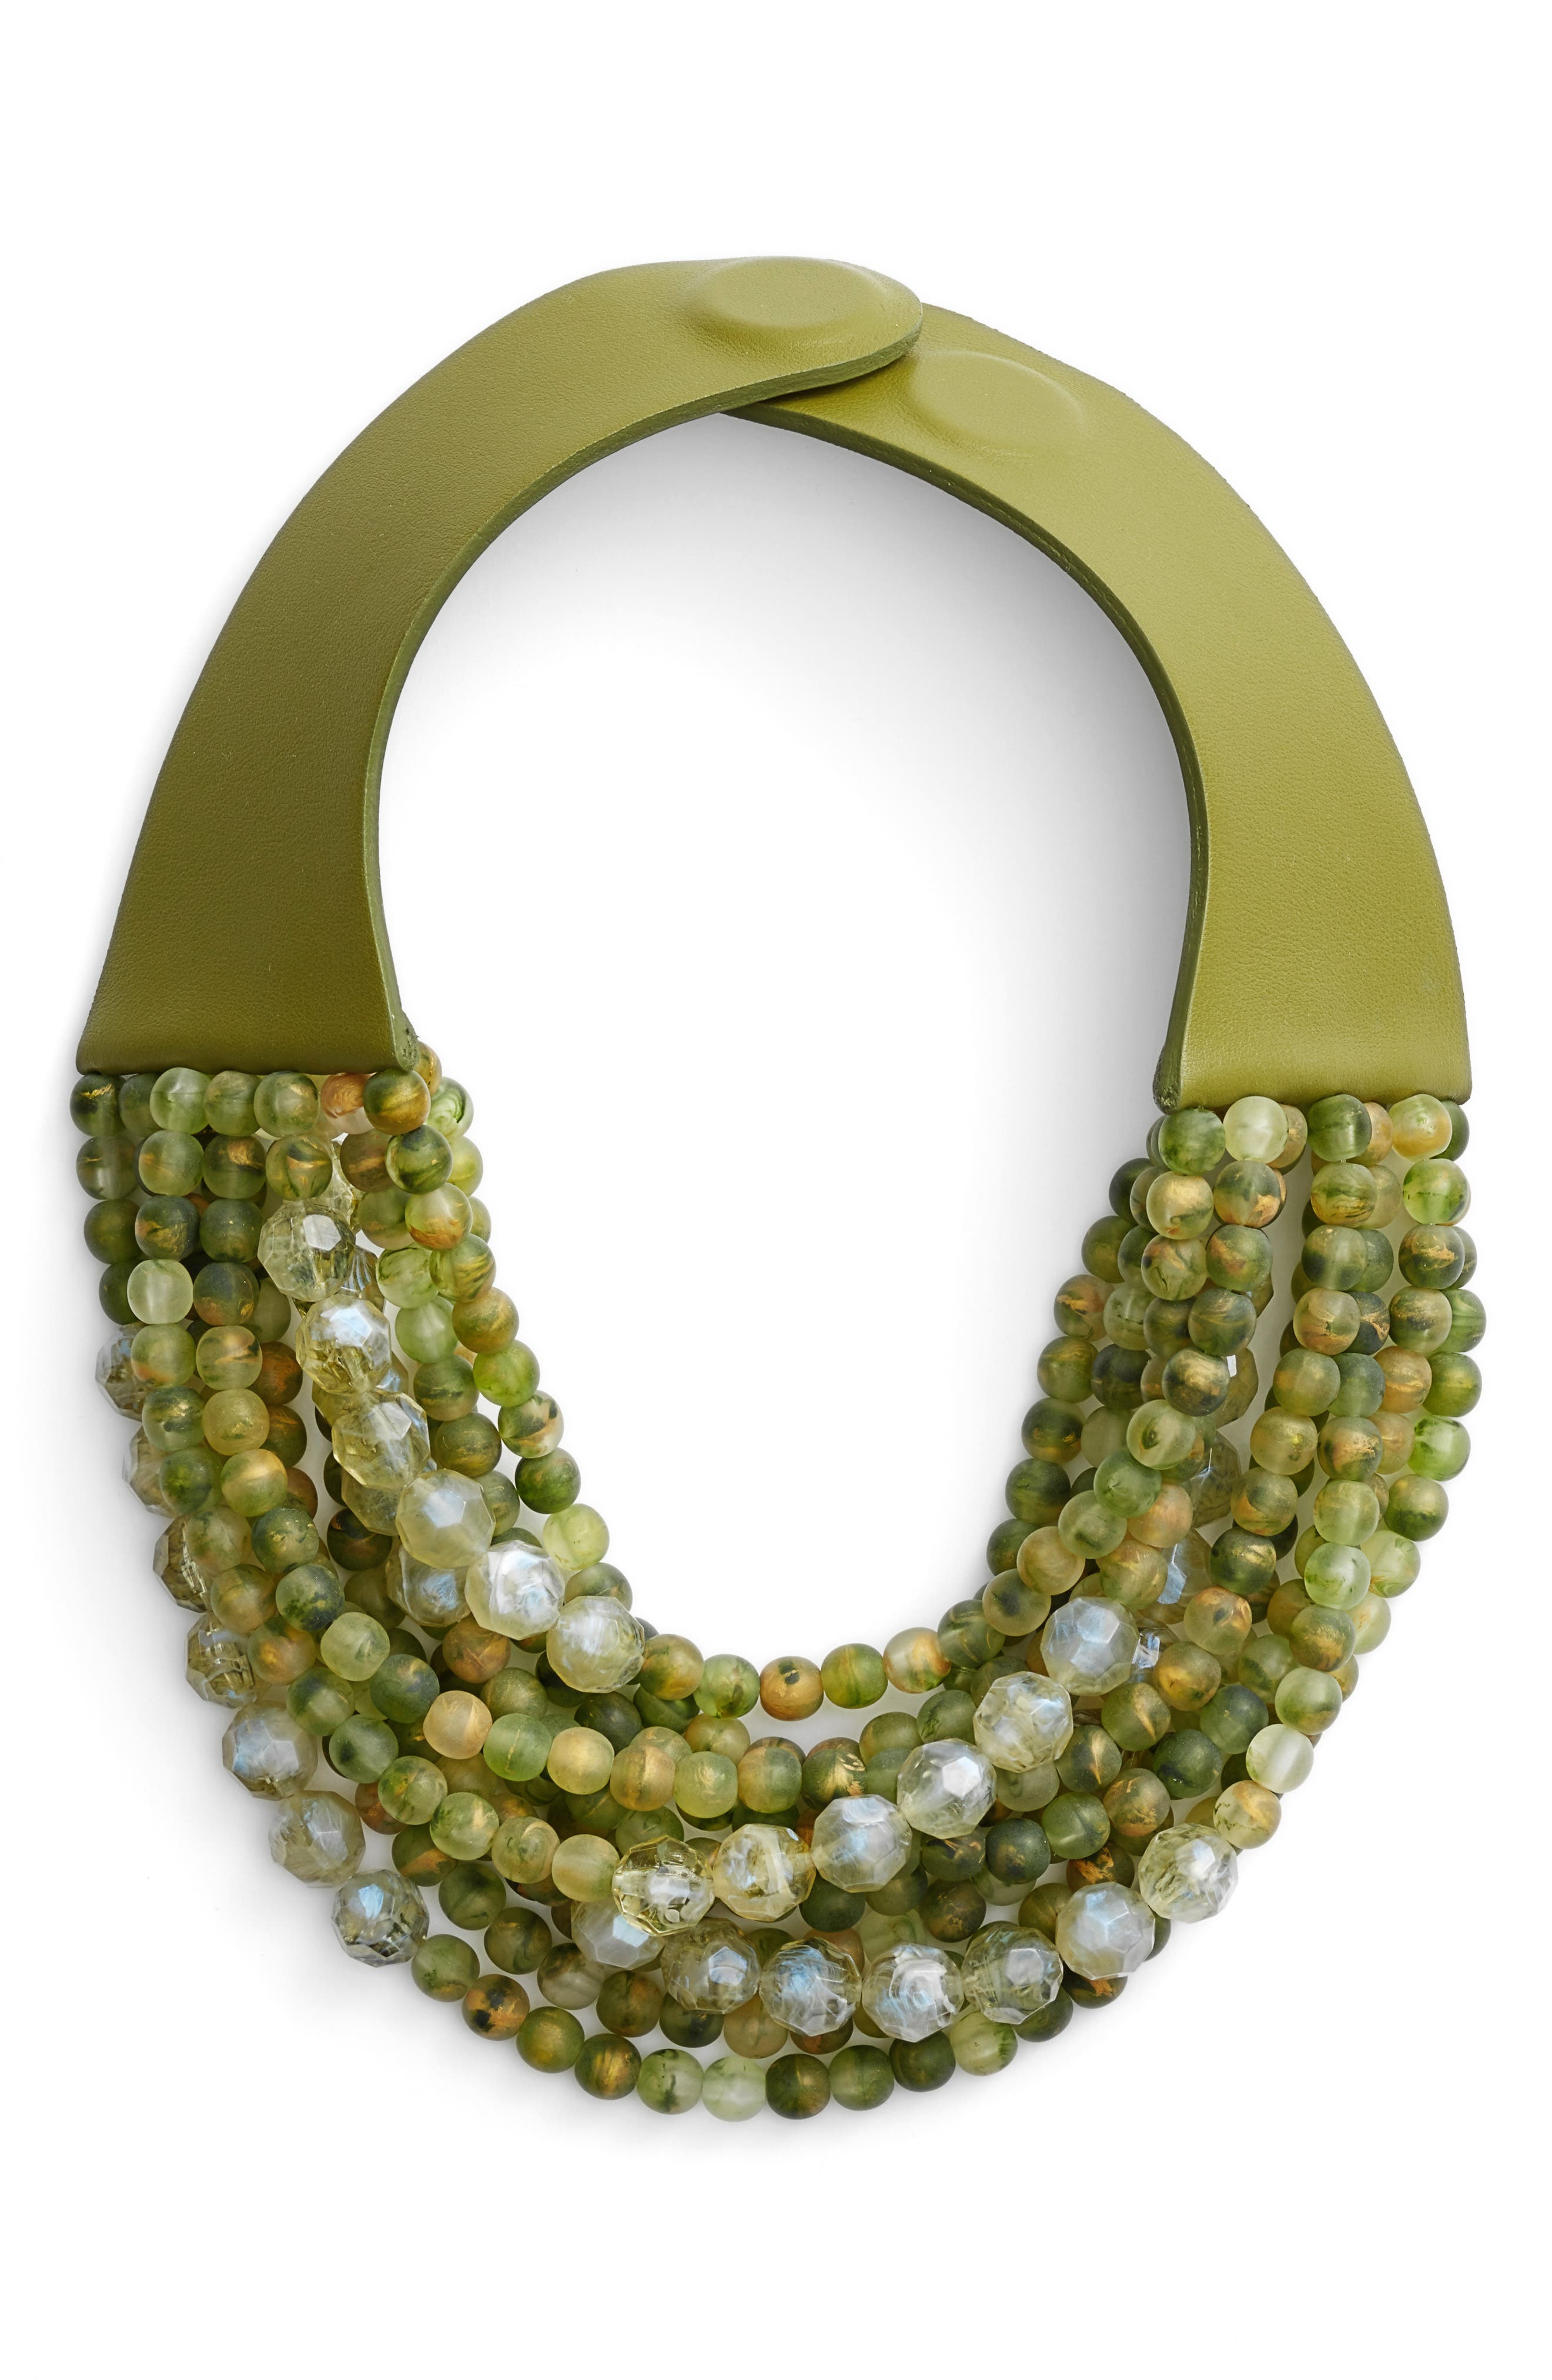 Farichild Baldwin Marcella Beaded Collar Necklace